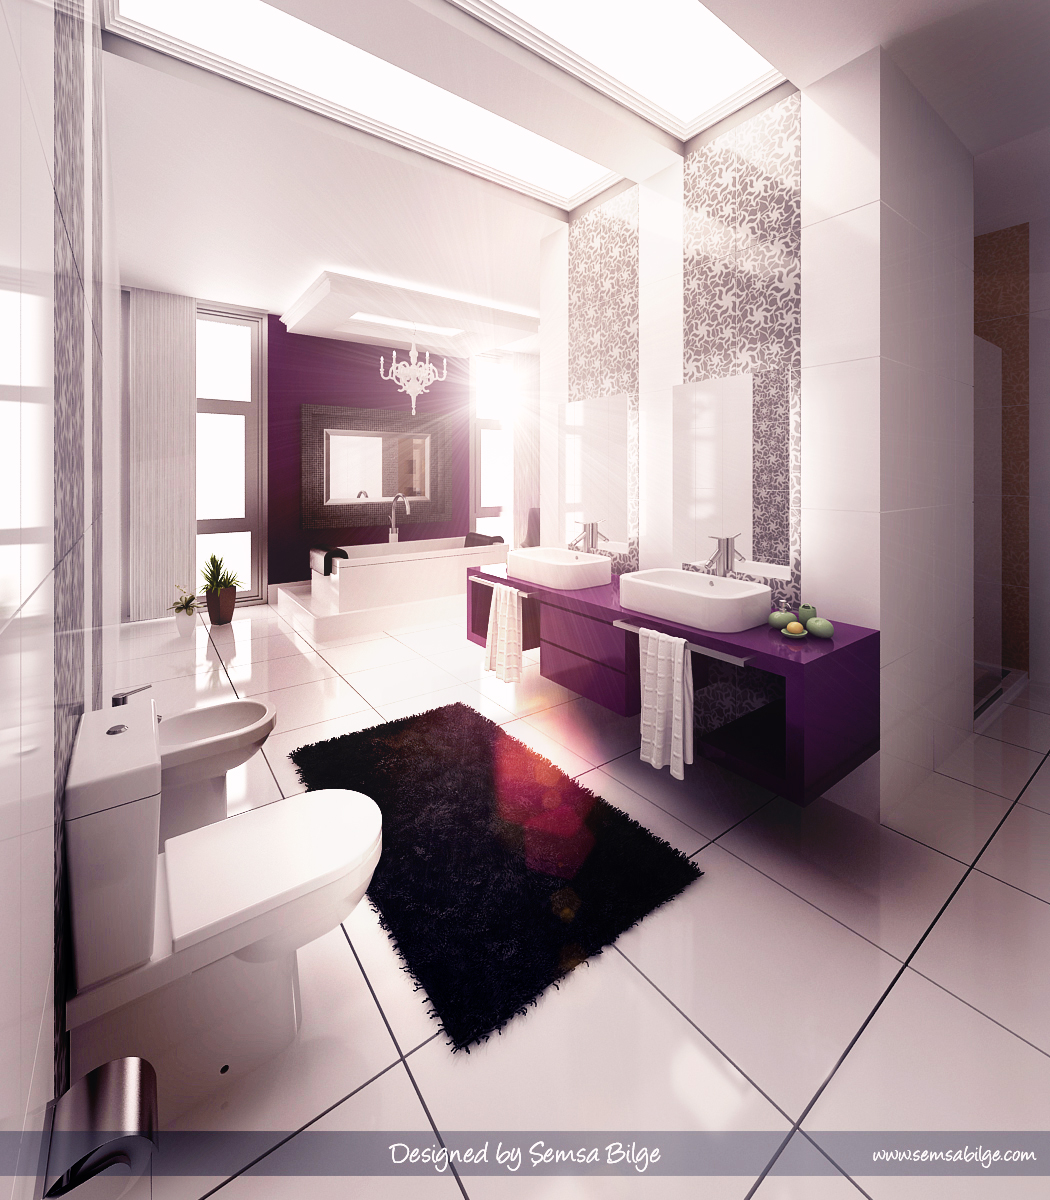 Inspiring bathroom designs for the soul for Bathroom decorating themes